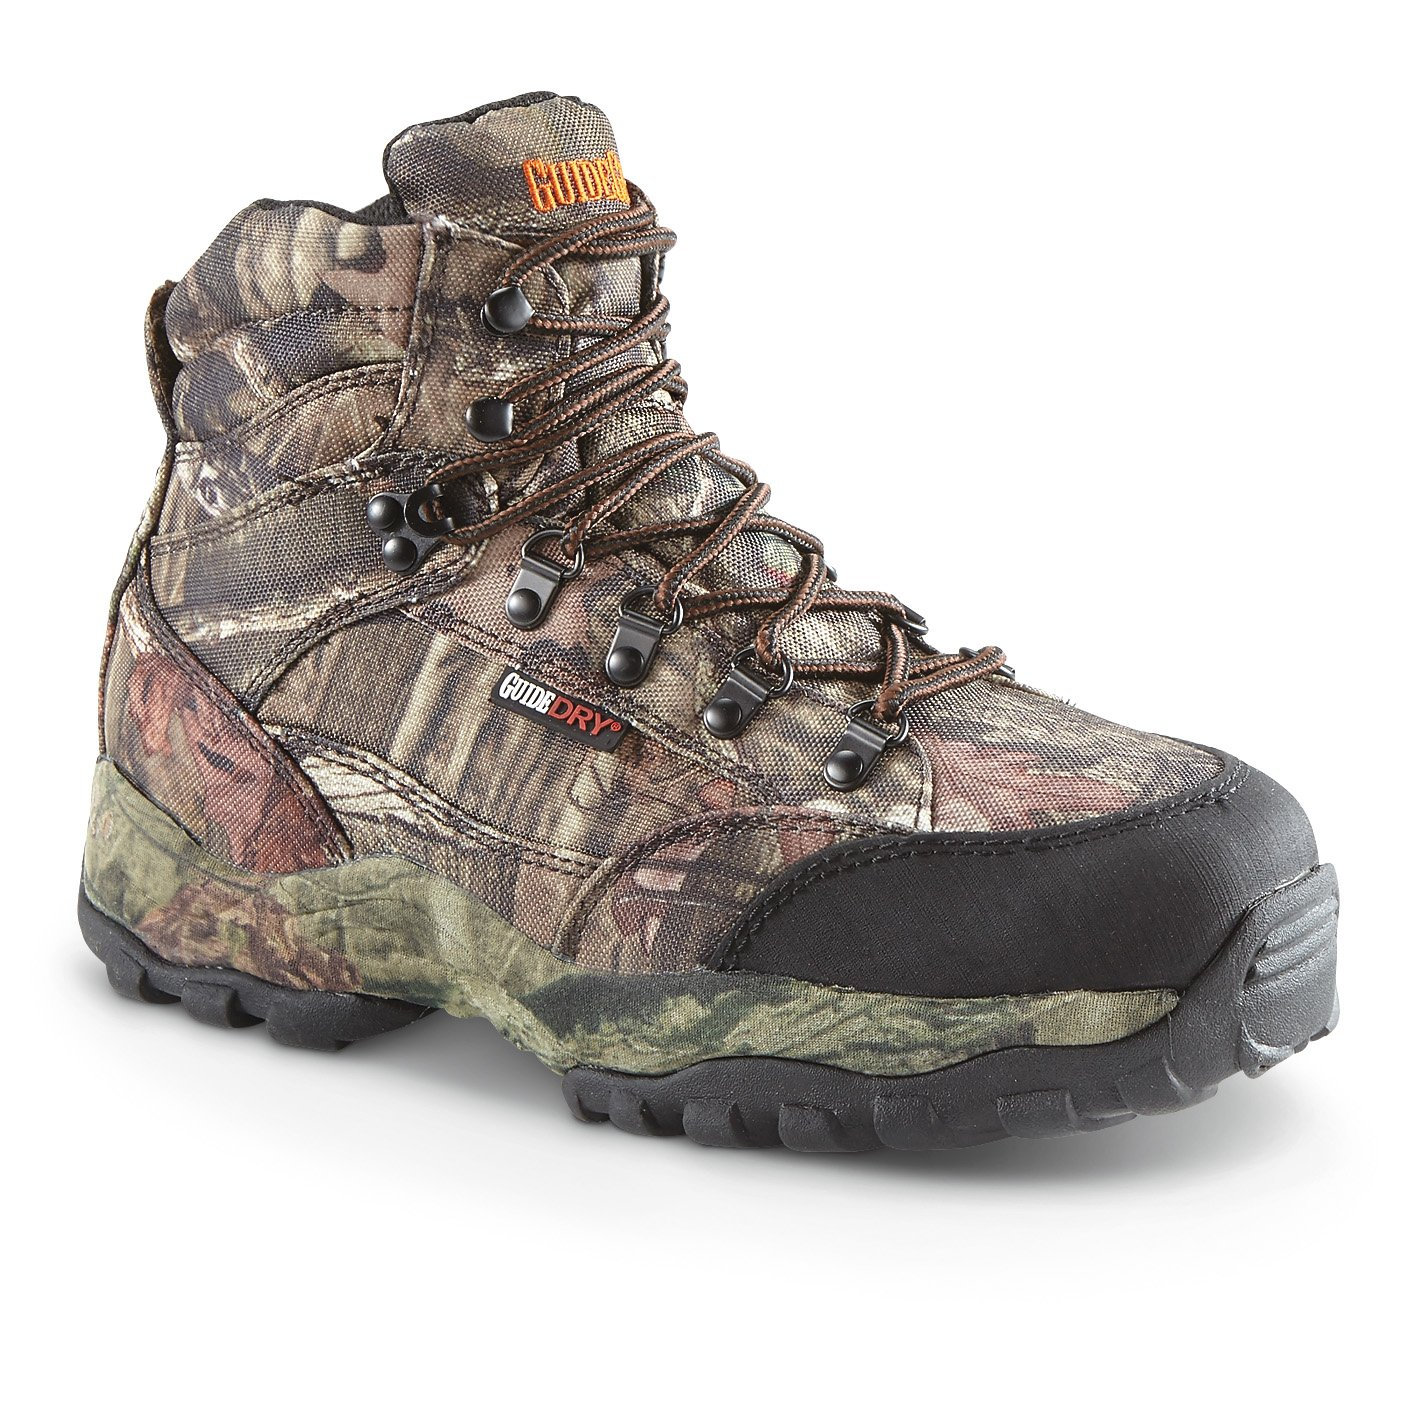 Guide Gear Men's Guidelight II 6'' Insulated Waterproof Hunting Boots by Guide Gear